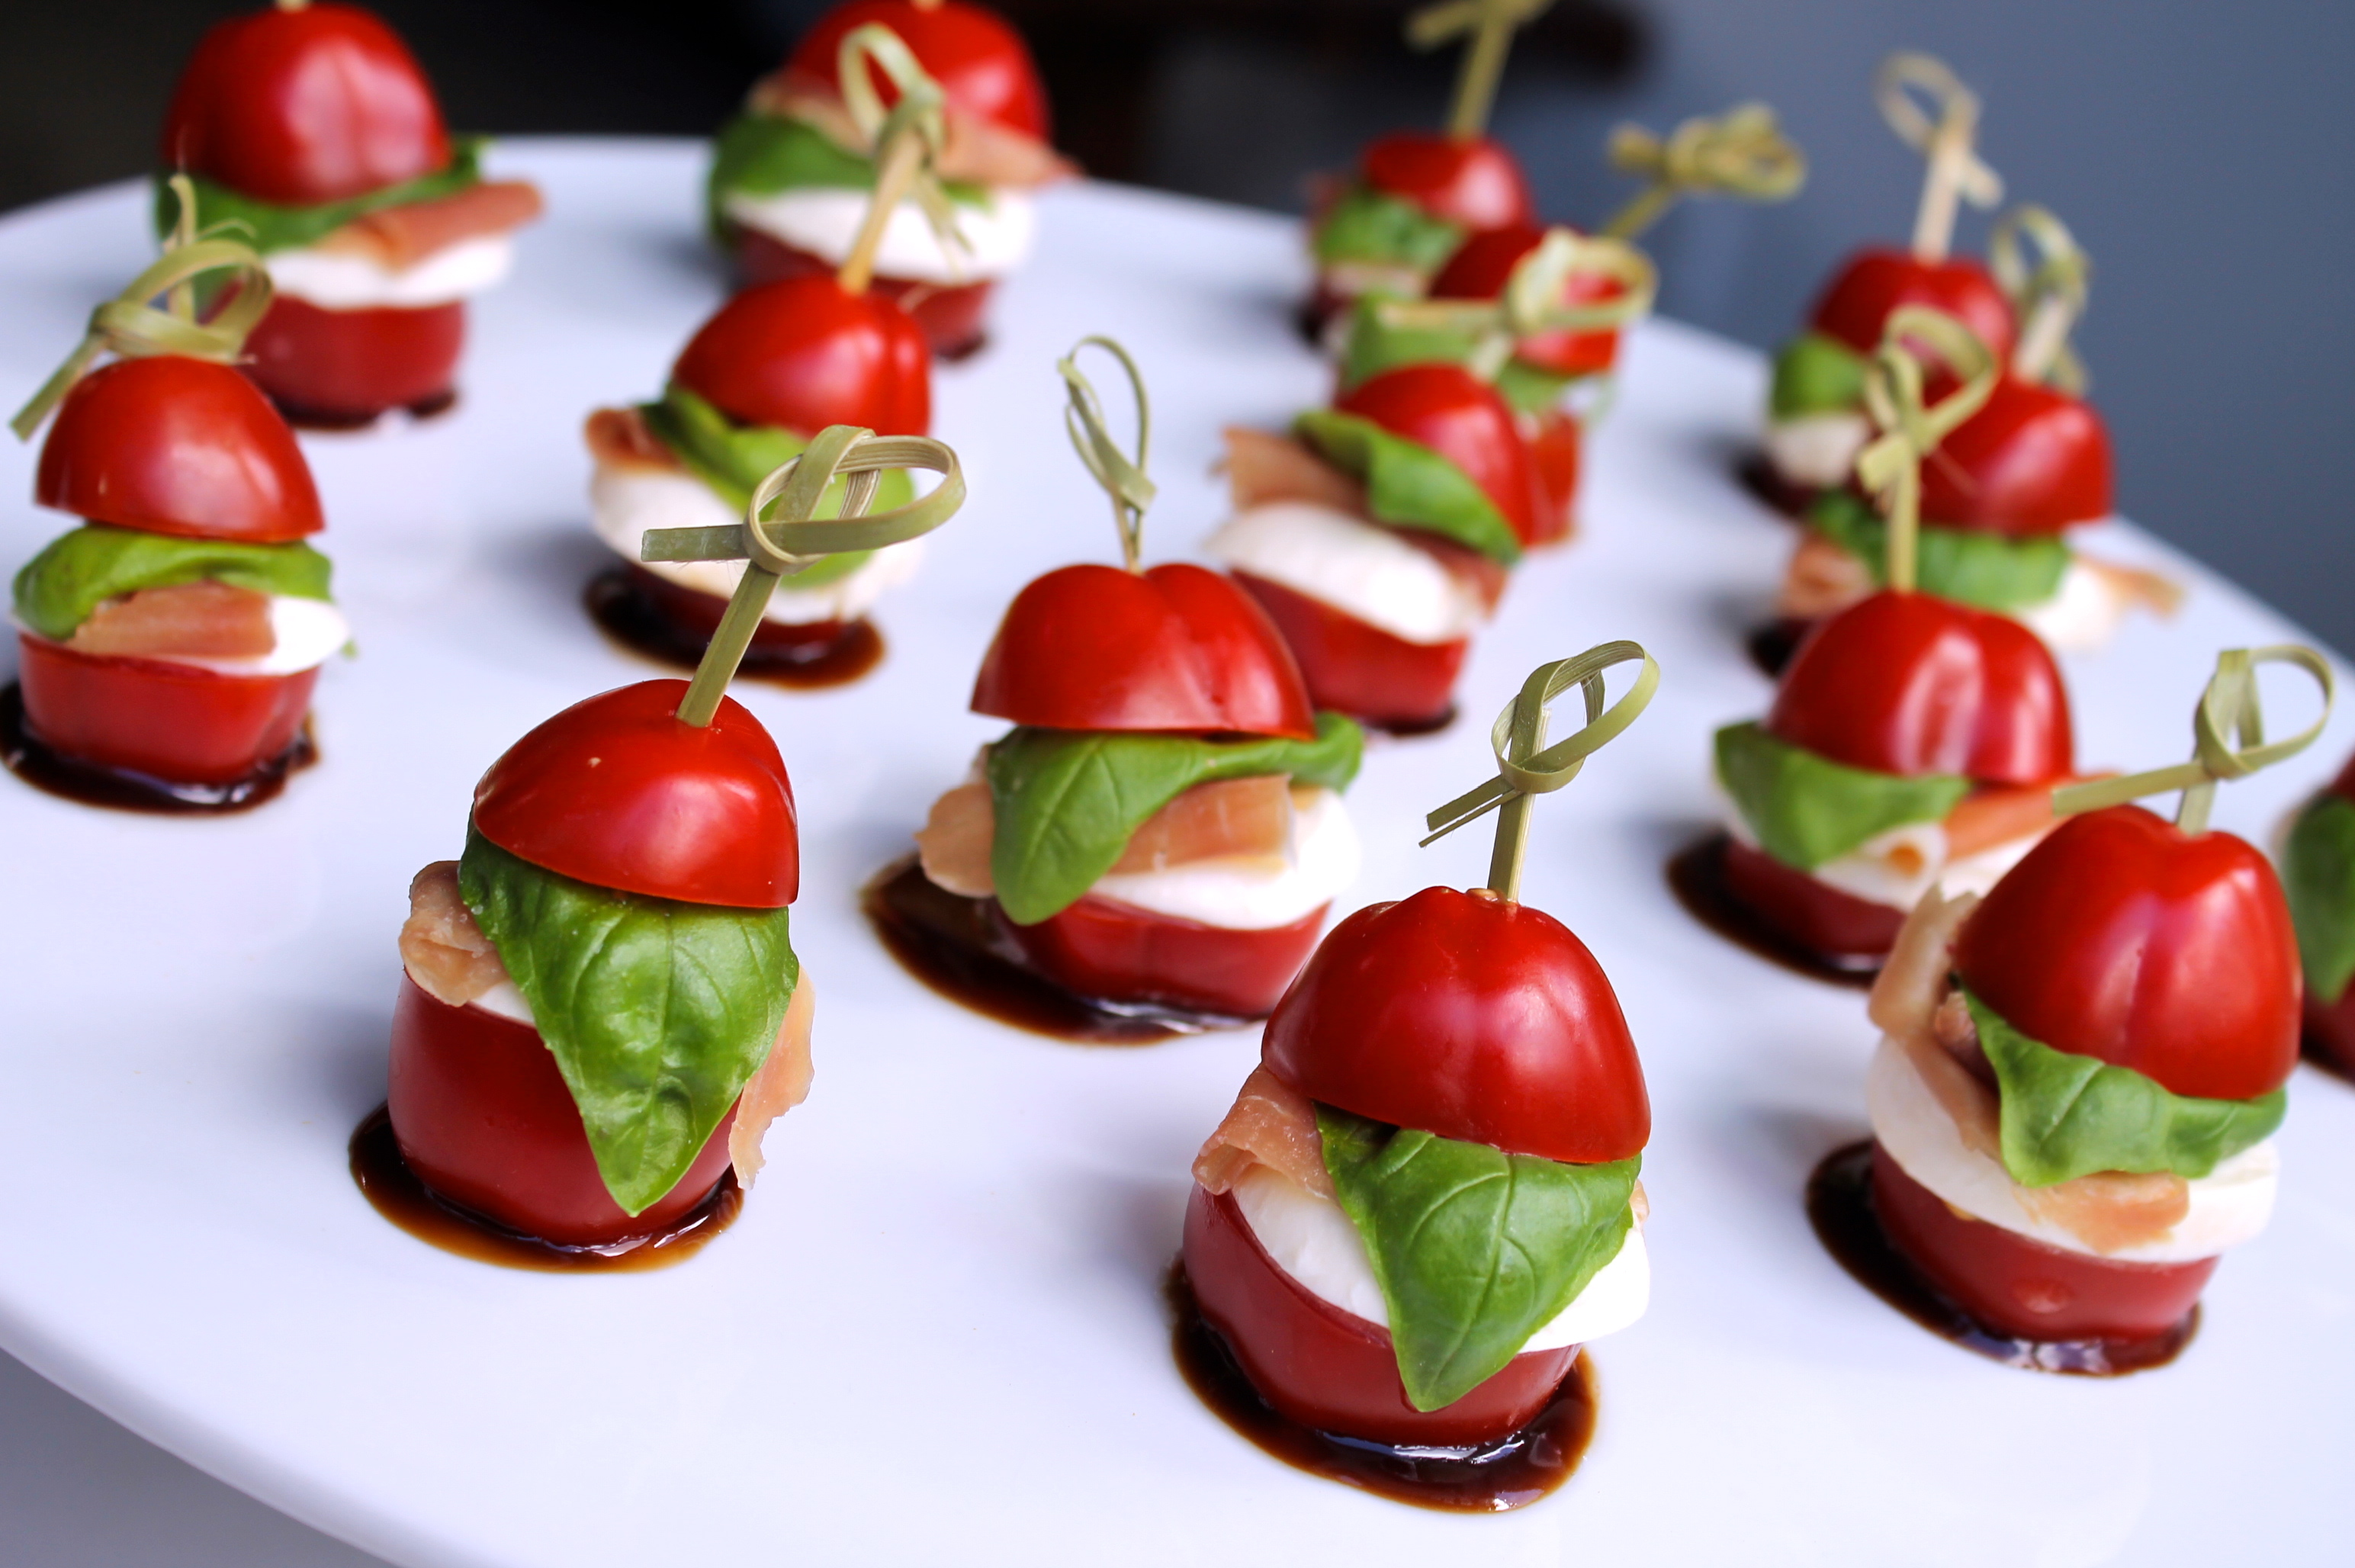 Cold buffet food service brighton and hove catering for Vegetarian canape